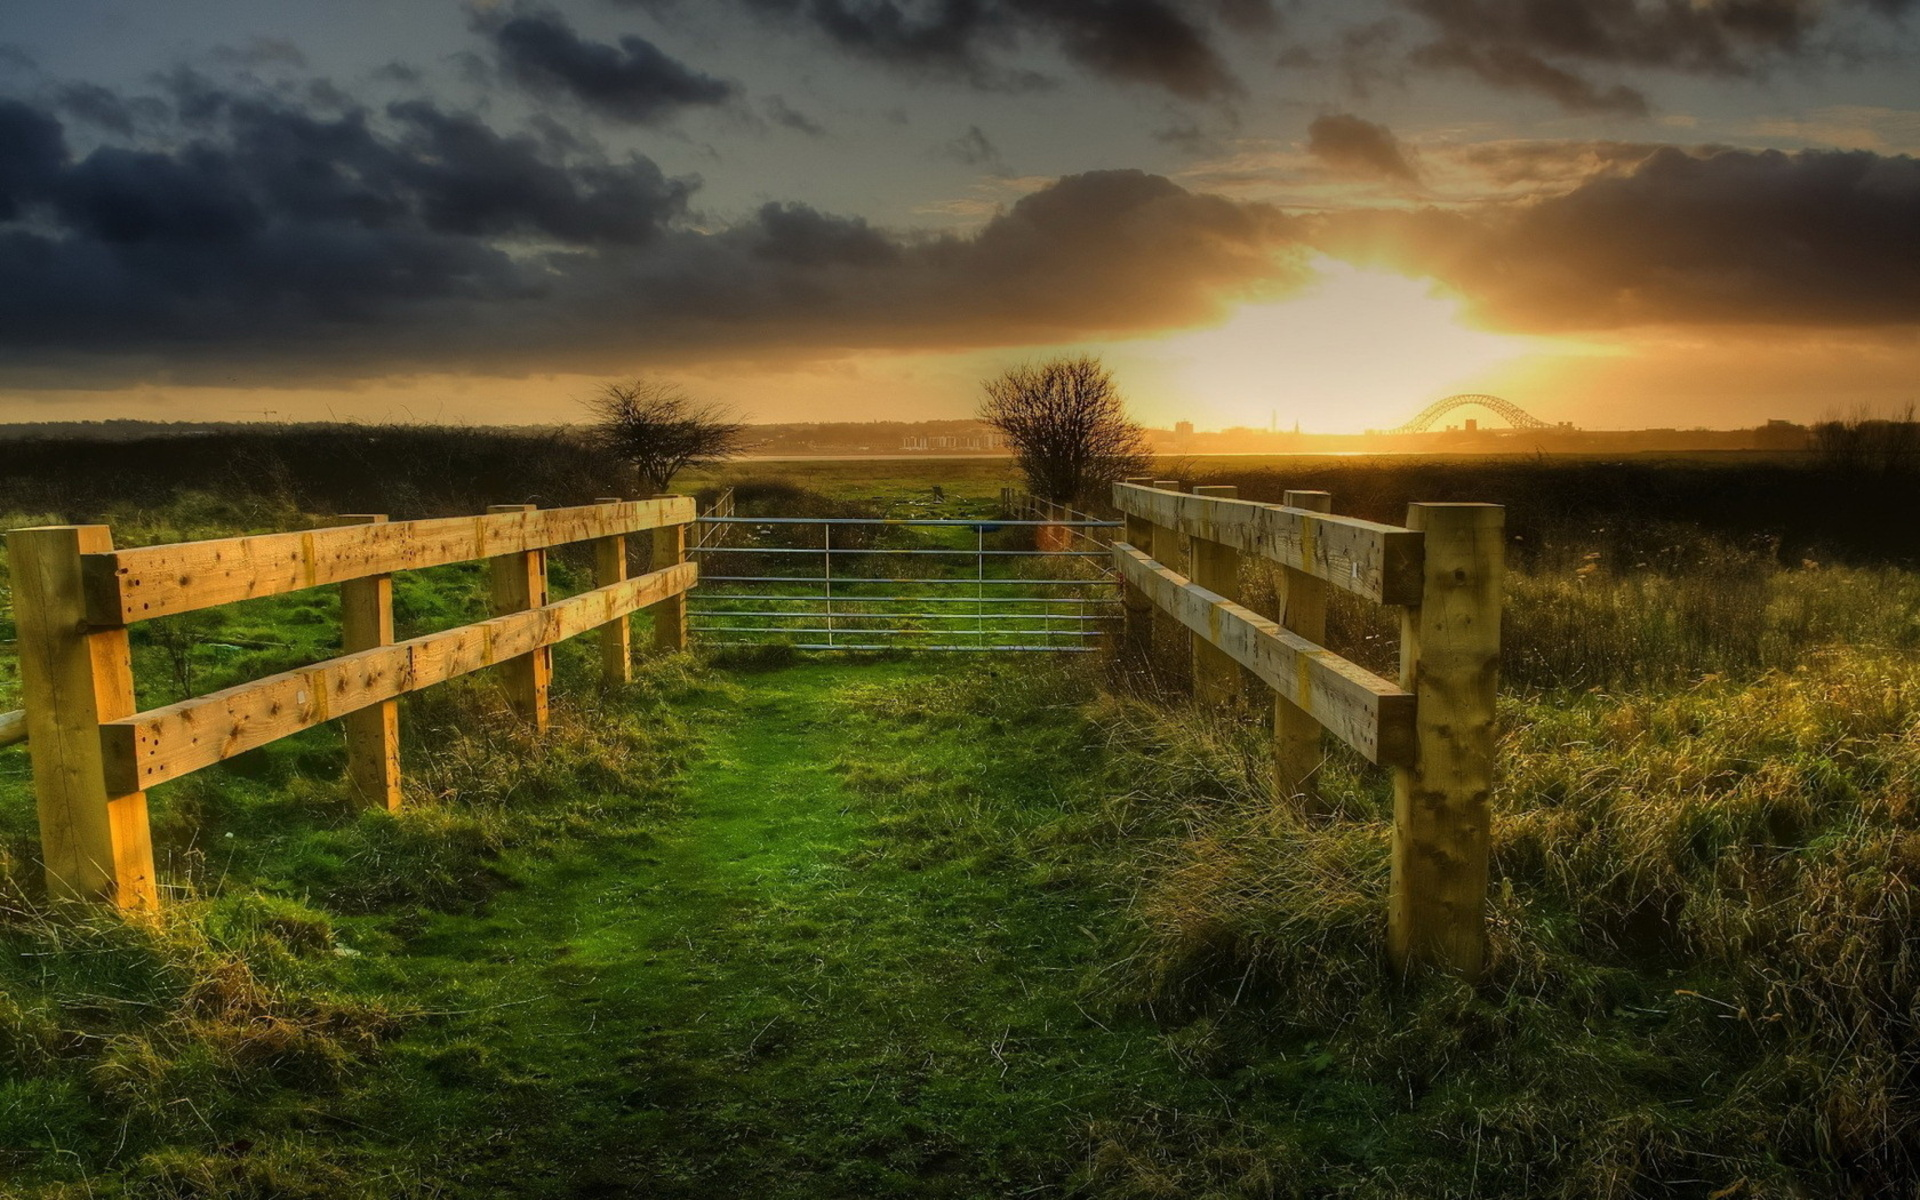 Fence HD Wallpaper   Background Image   1920x1200   ID ...